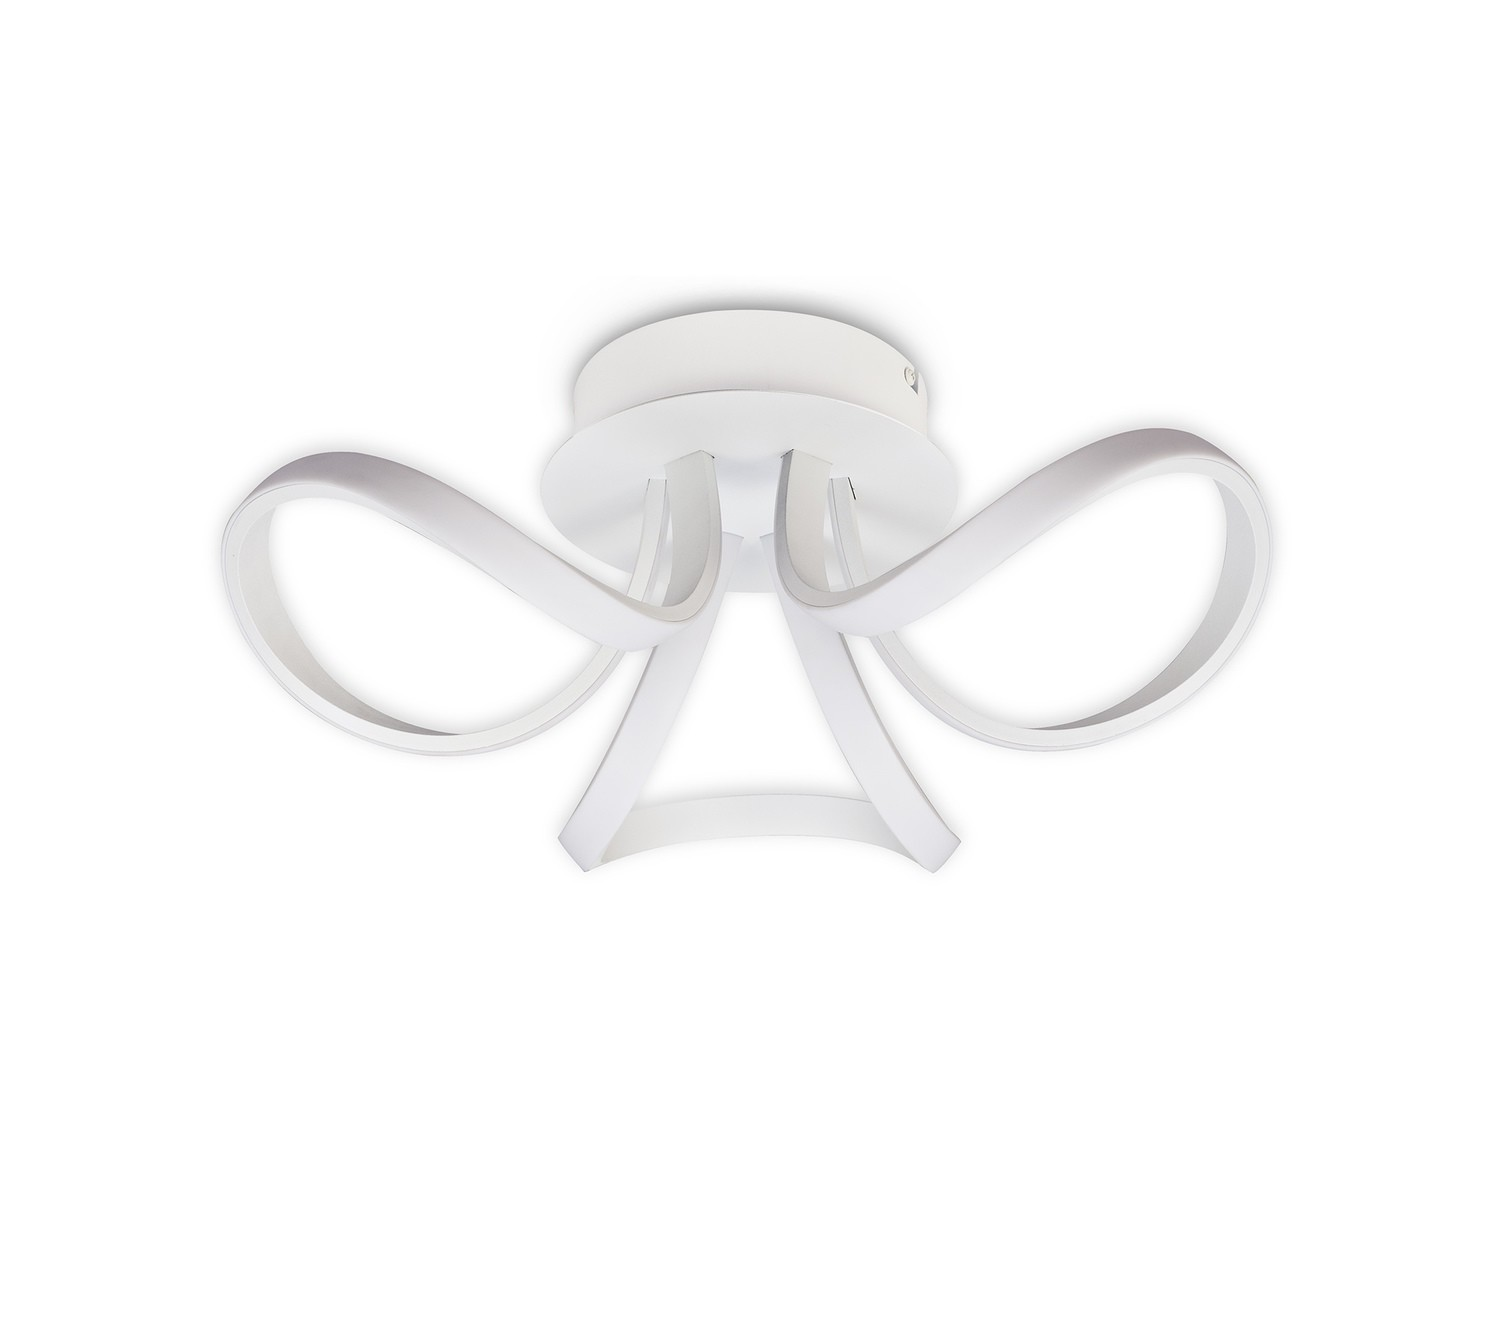 Mantra M6035 Knot Blanco Ceiling 48cm Round 3 Looped Arms 36W LED 2800K, 2520lm, White/ Frosted Acrylic, 3yrs Warranty